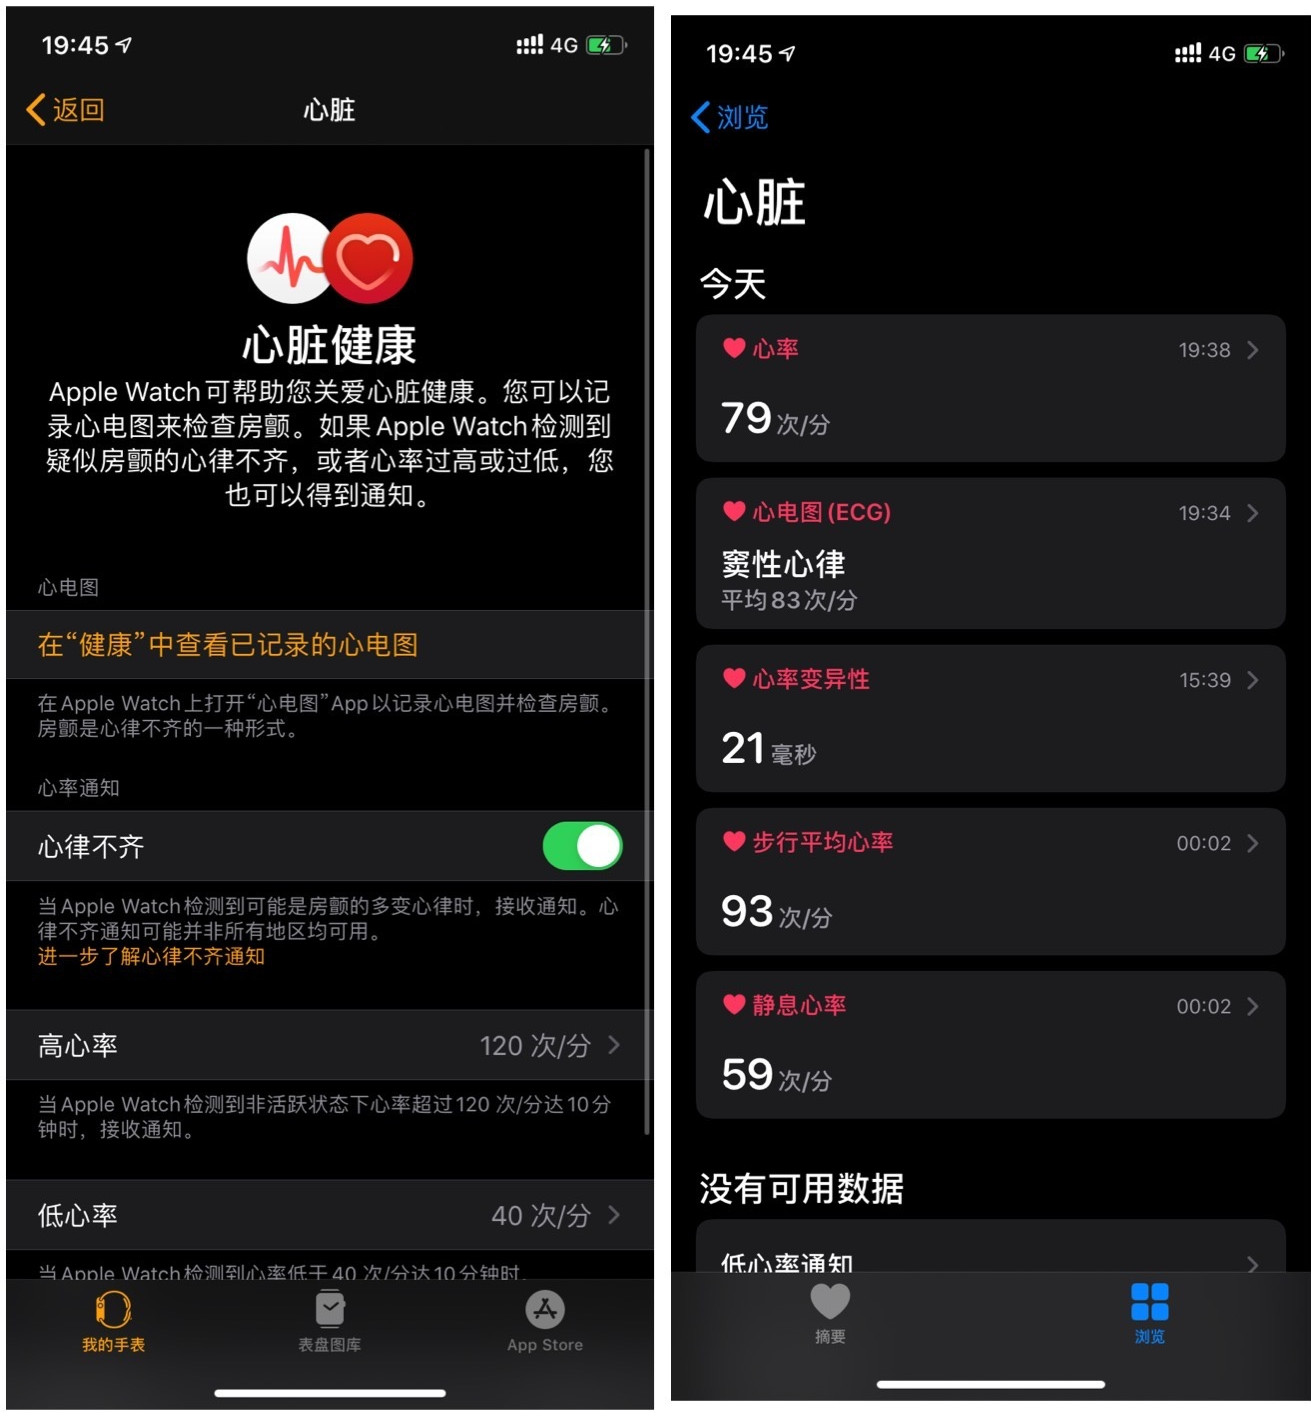 国行 Apple Watch 如何开通 ECG 功能?